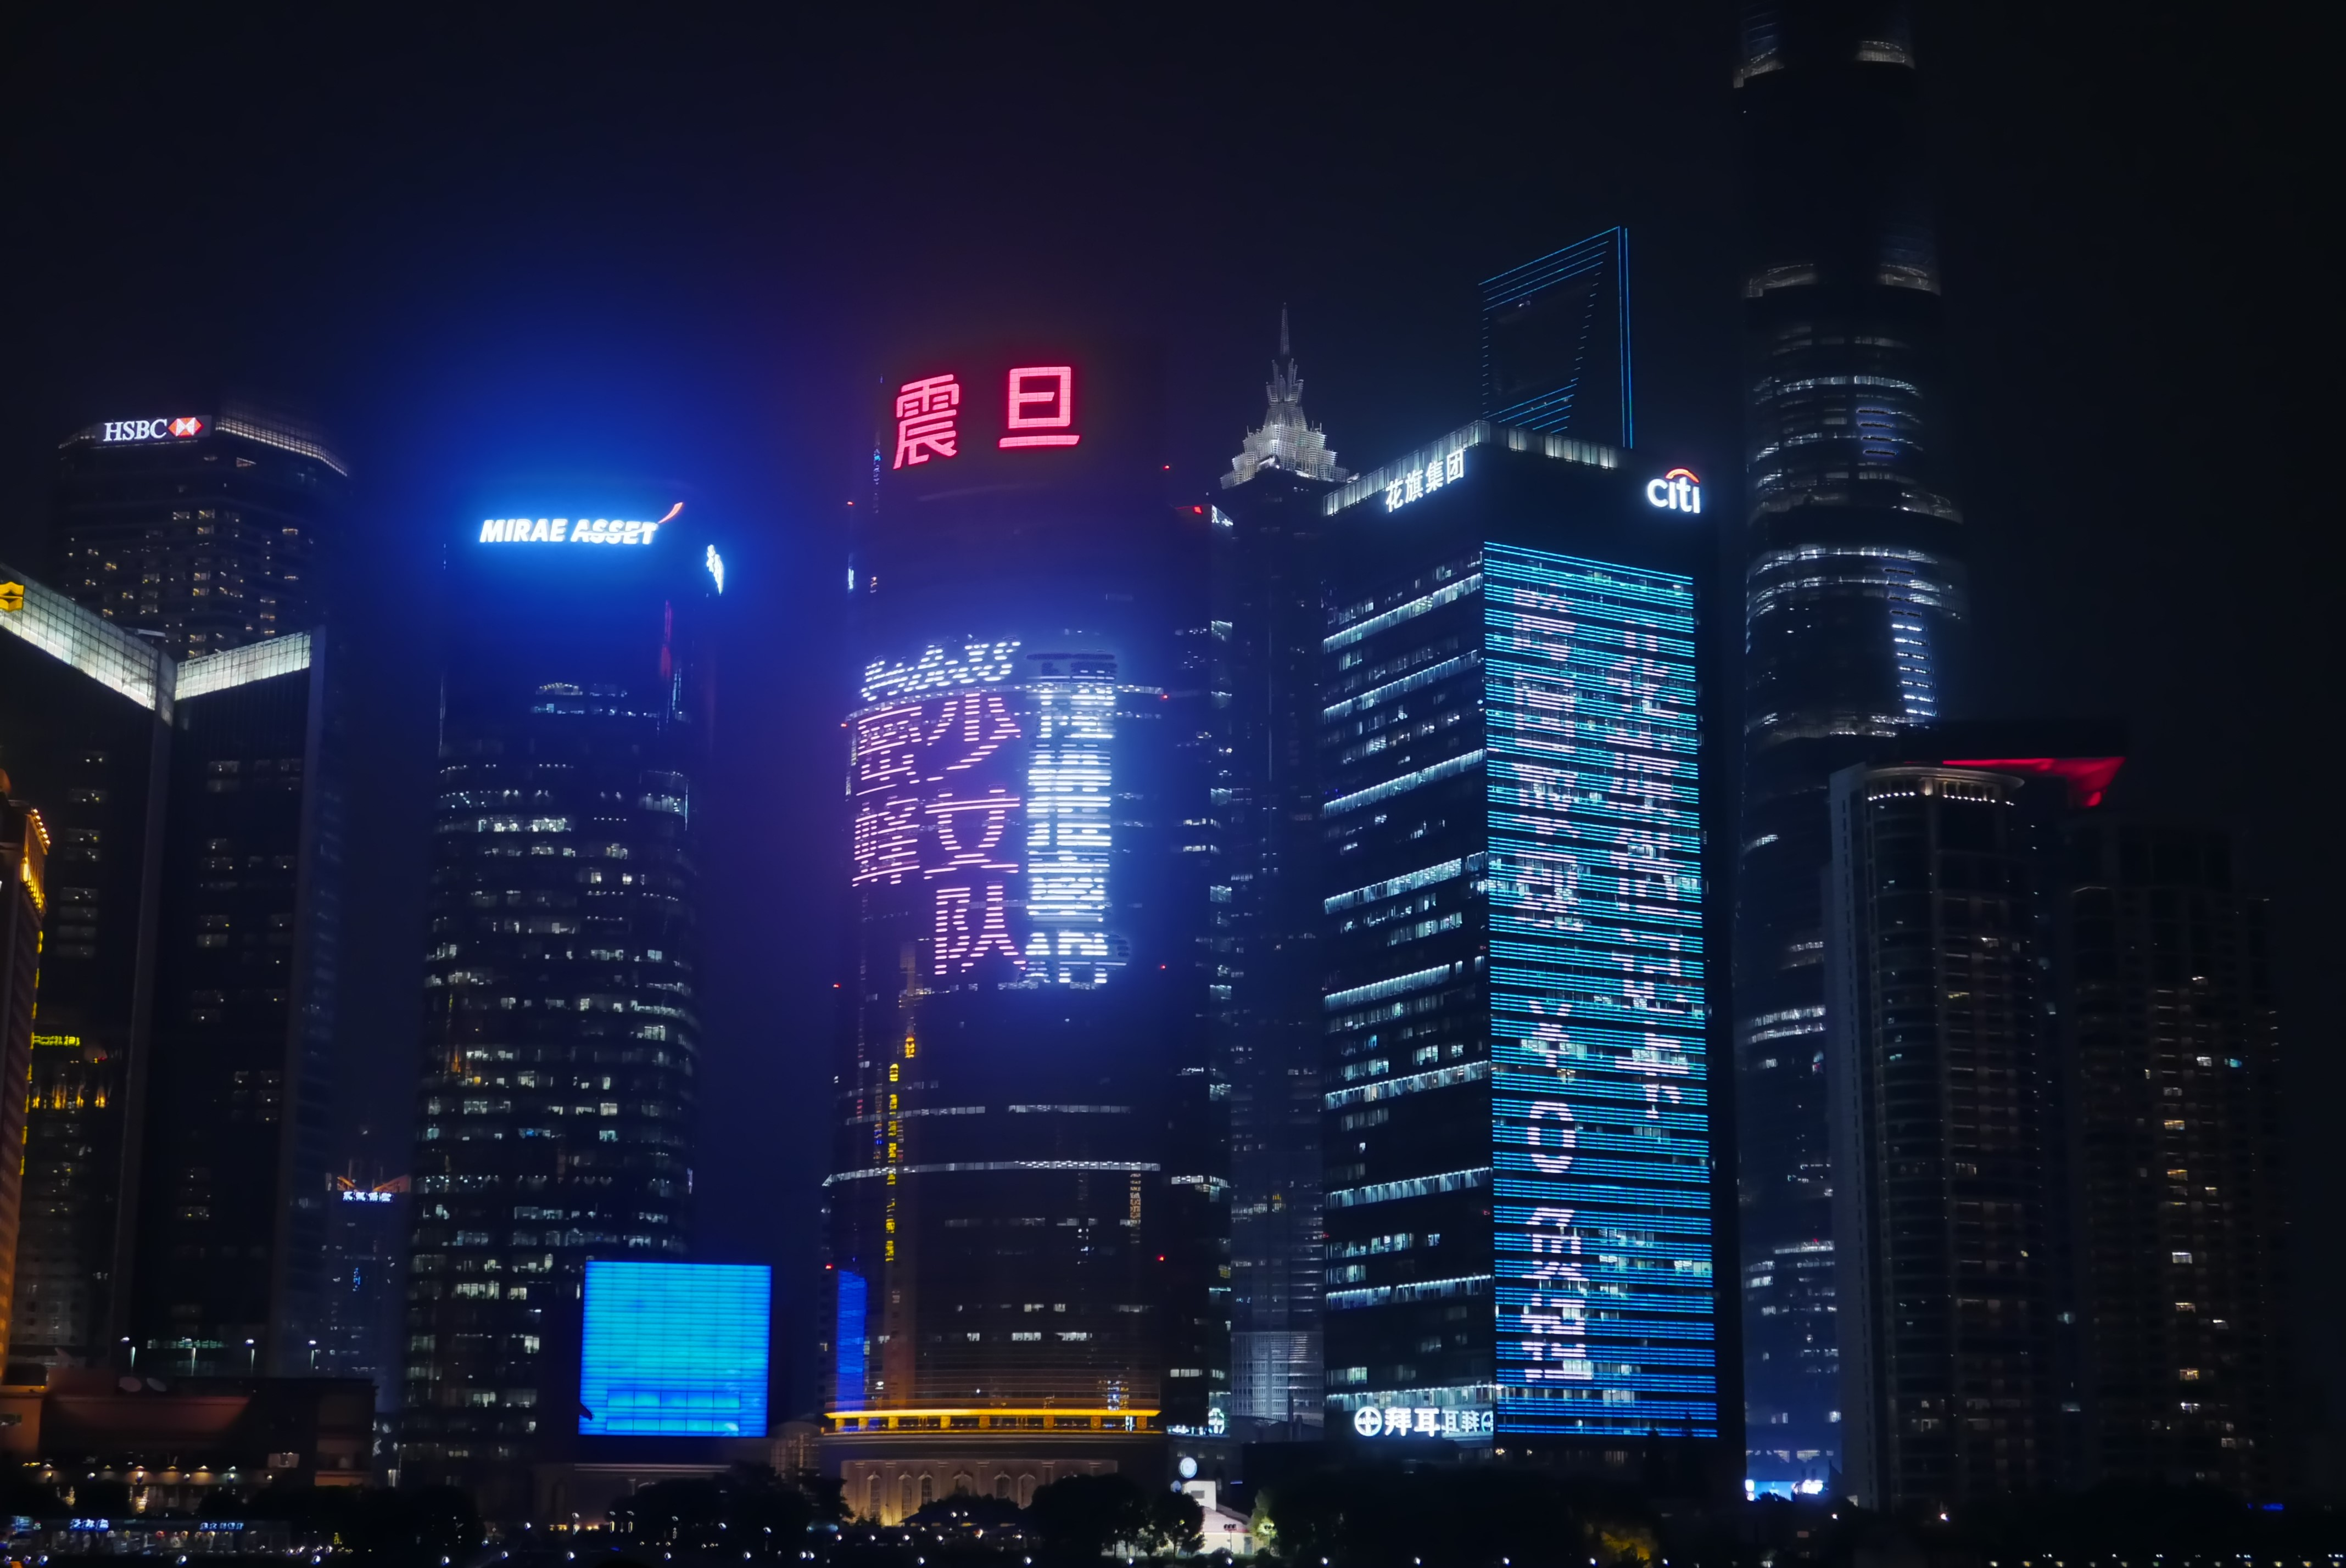 Shanghai highrises at night, photo by Charles Britton